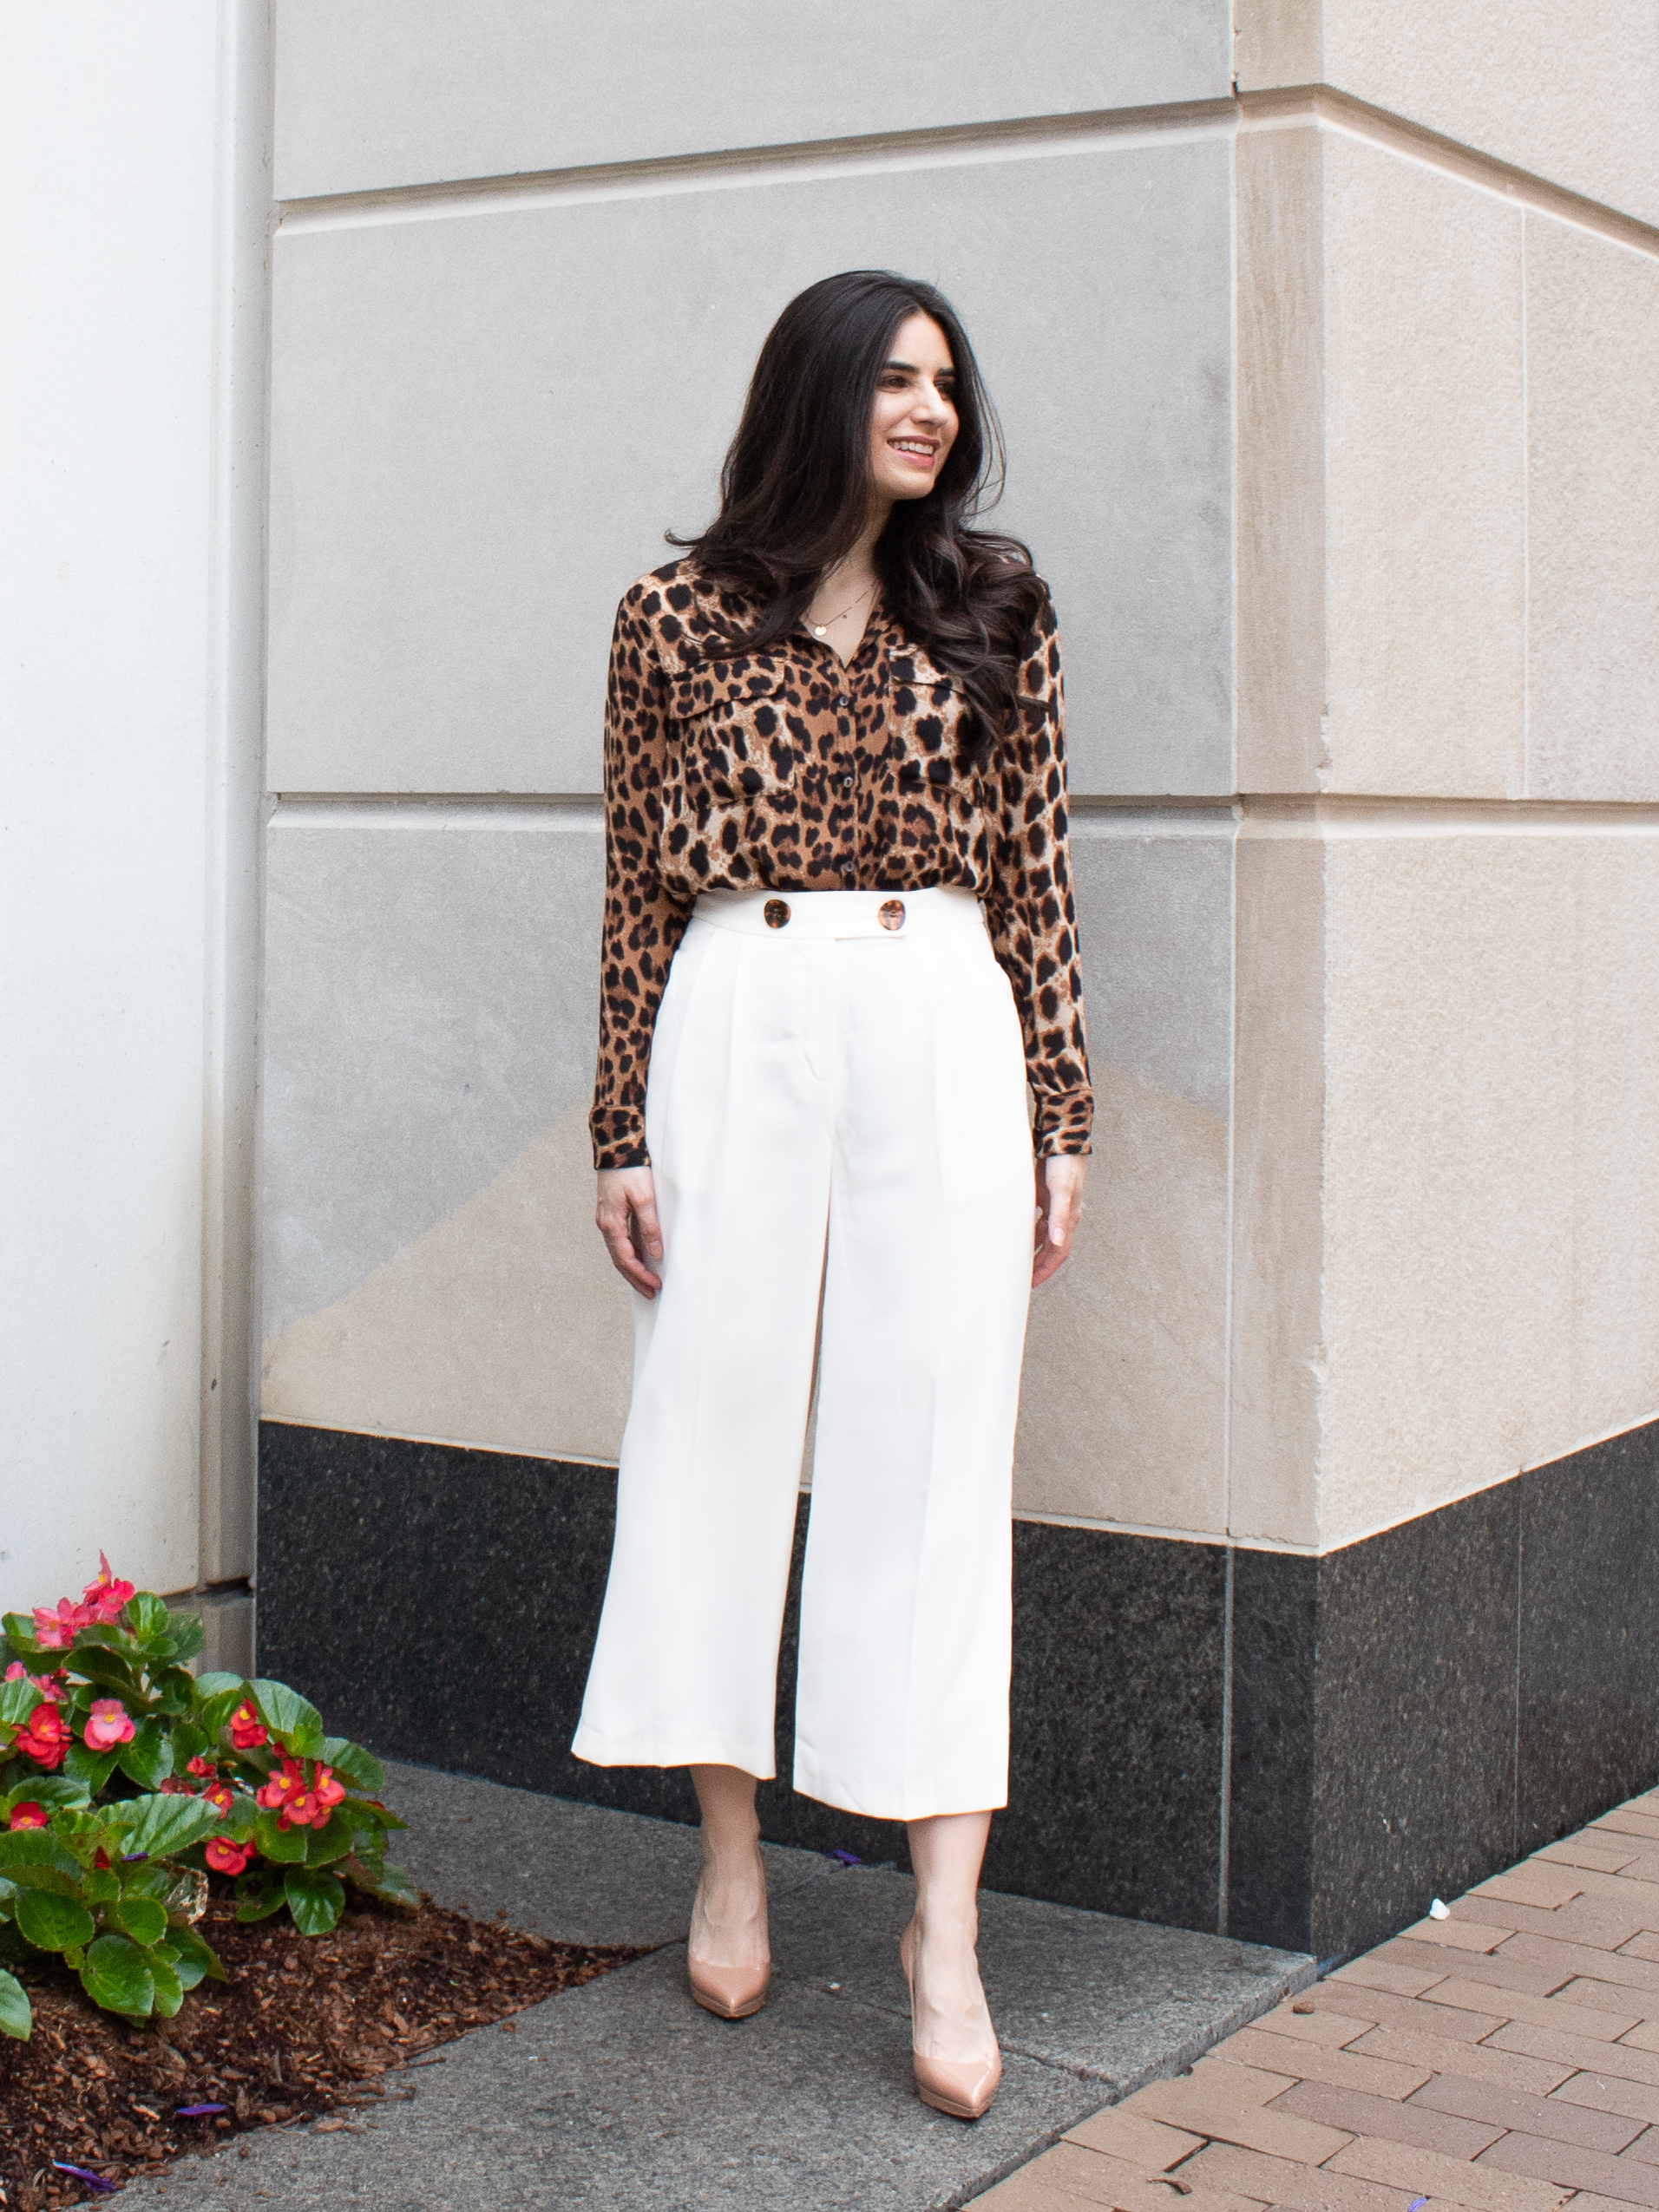 The summer trend that I am absolutely loving right now are these wide leg, cropped pants! I am seeing them everywhere and in every color! I have linked these exact pants below. I really like them because they are super light and airy for summer, and since they're white, they match almost everything! These pants look particularly good with brown/tan/camel/black neutrals, since they have these beautiful tortoise-shell buttons on the front, which play off of those colors. These pants look super cute with both heels and flats which I have demonstrated in the photos below. Also, since they are not lined, I advise wearing something underneath, like  these spanx  ( https://rstyle.me/n/dm3tgccd2mf)  (which I am wearing in these photos!). P.S. I just recently discovered the miracle of spanx. I have heard of them before, but never tried them. My verdict: they're amazing and I have no idea where they've been all my life! They are perfect for wearing under thinner or lighter fabrics or whenever you need extra coverage.